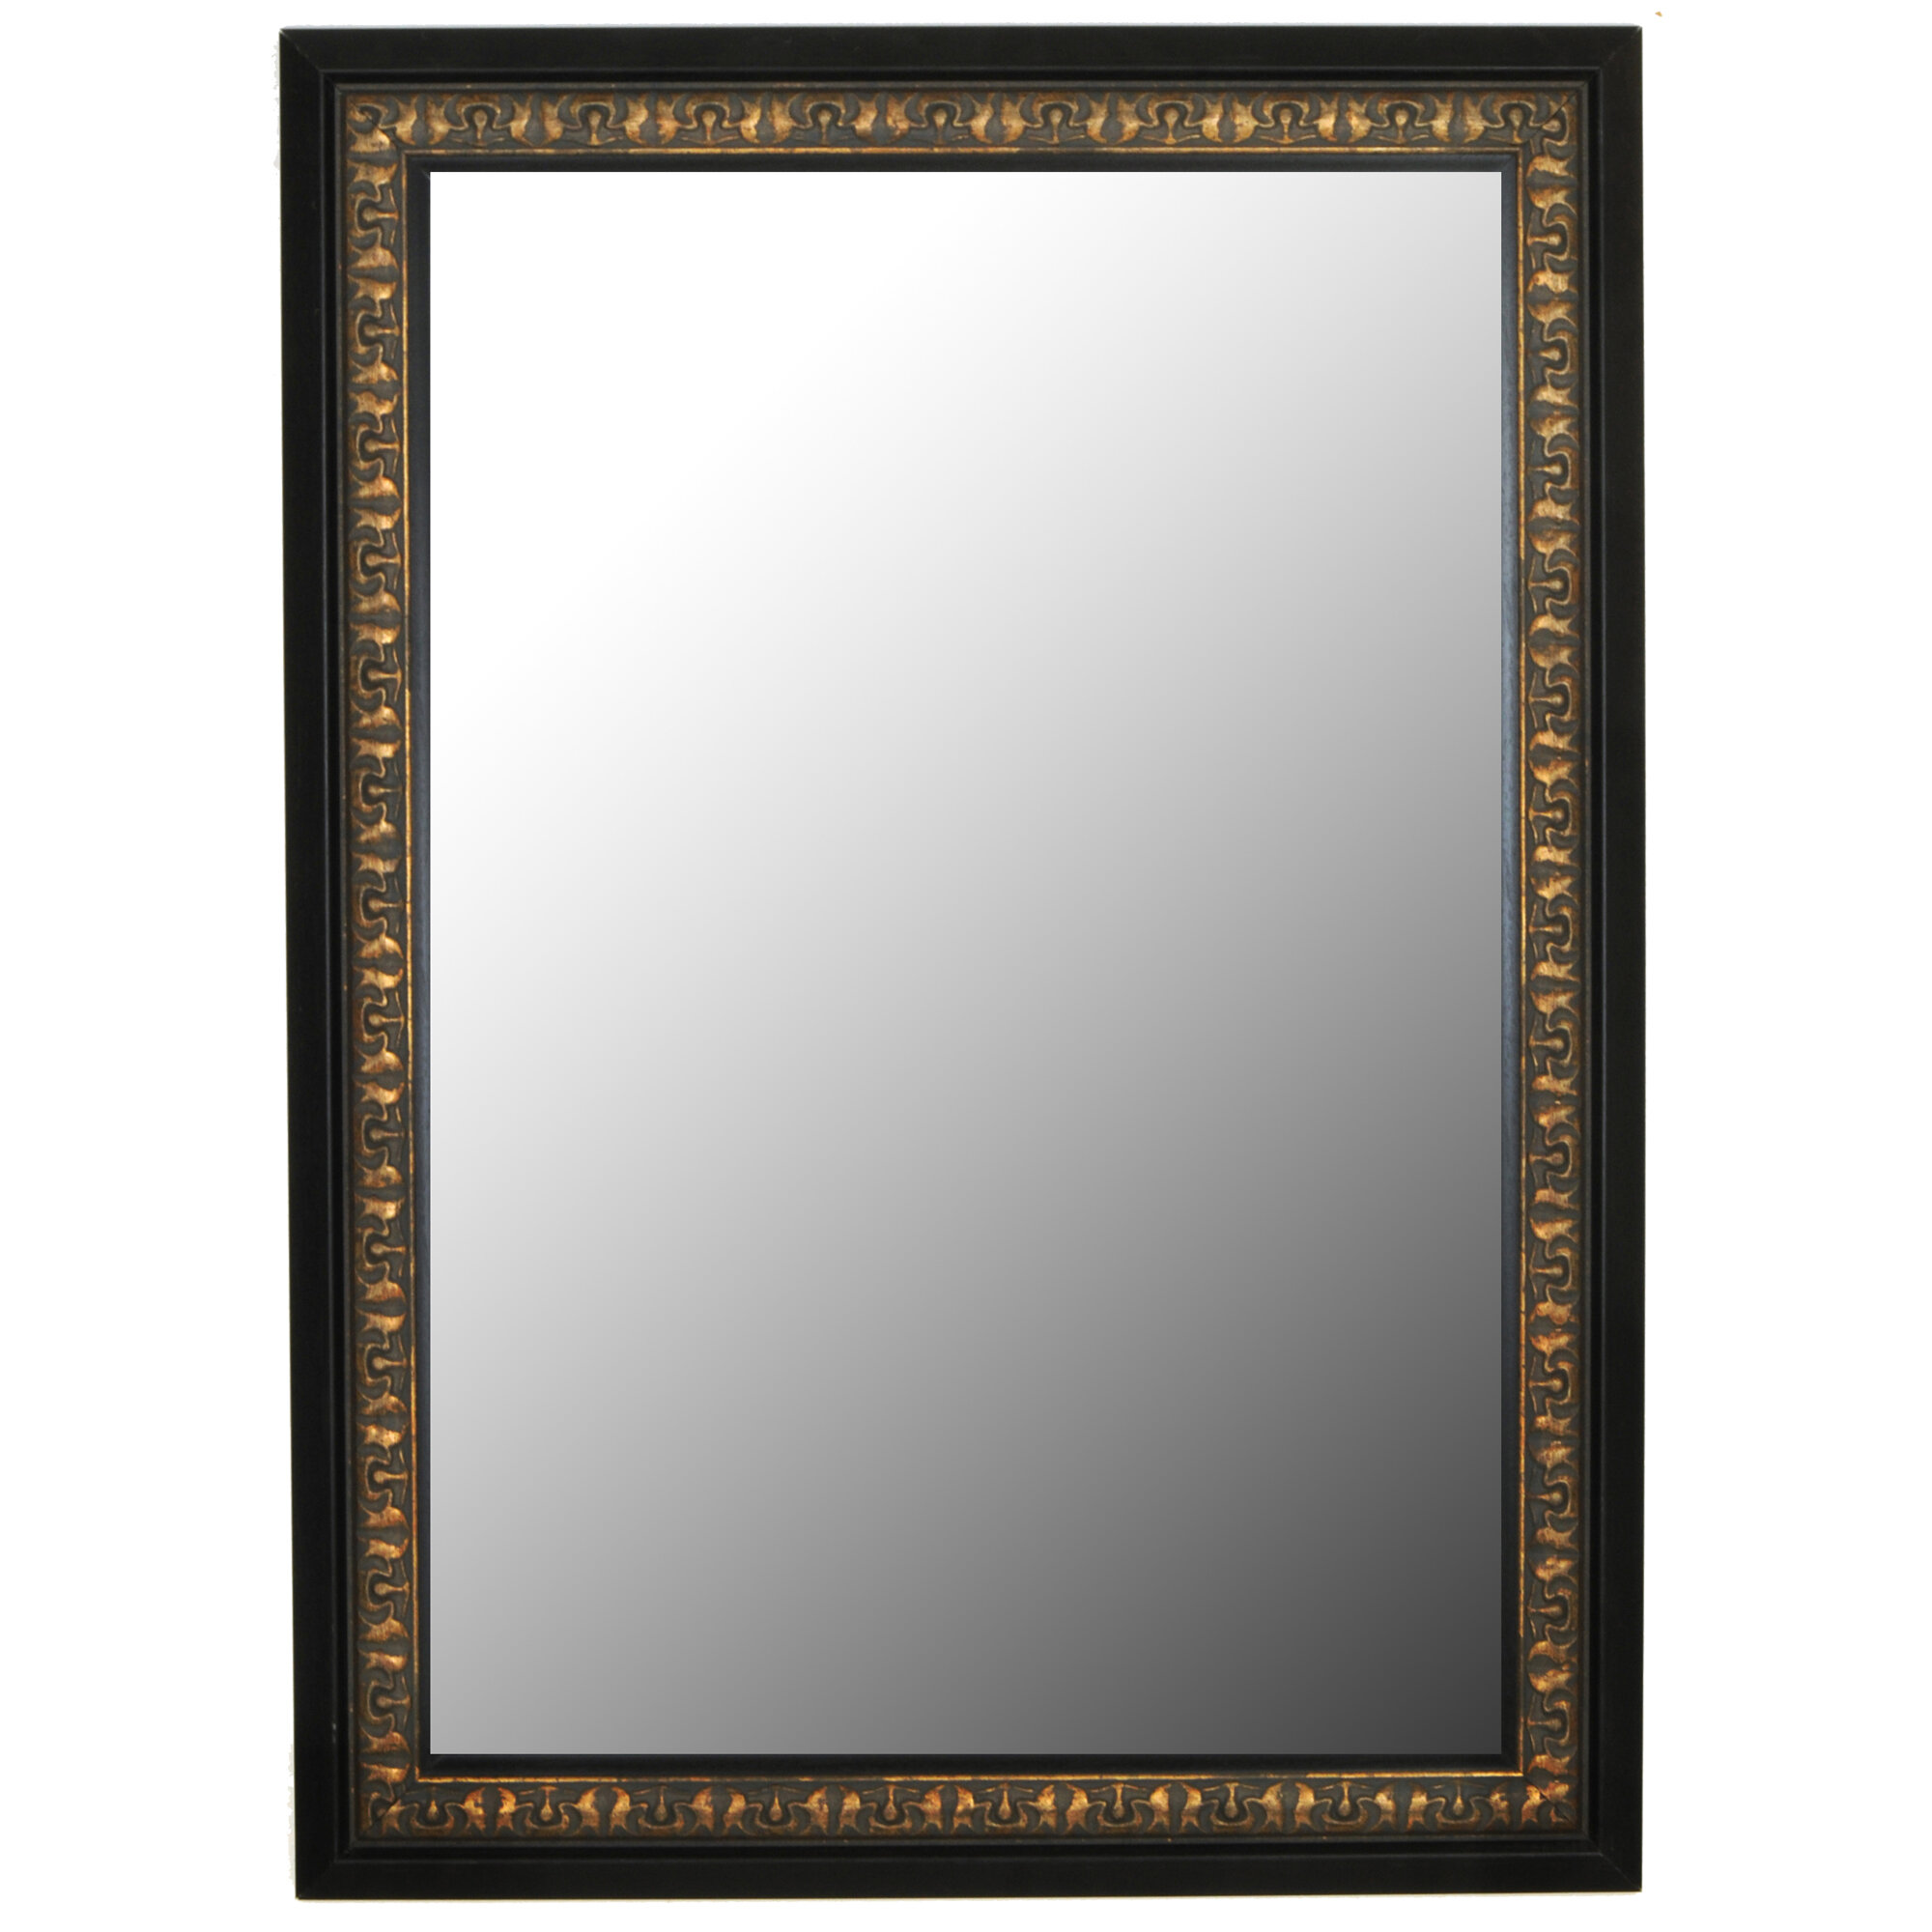 Second Look Mirrors Mumbai Vintage Copper Black Surround Wall Mirror ...